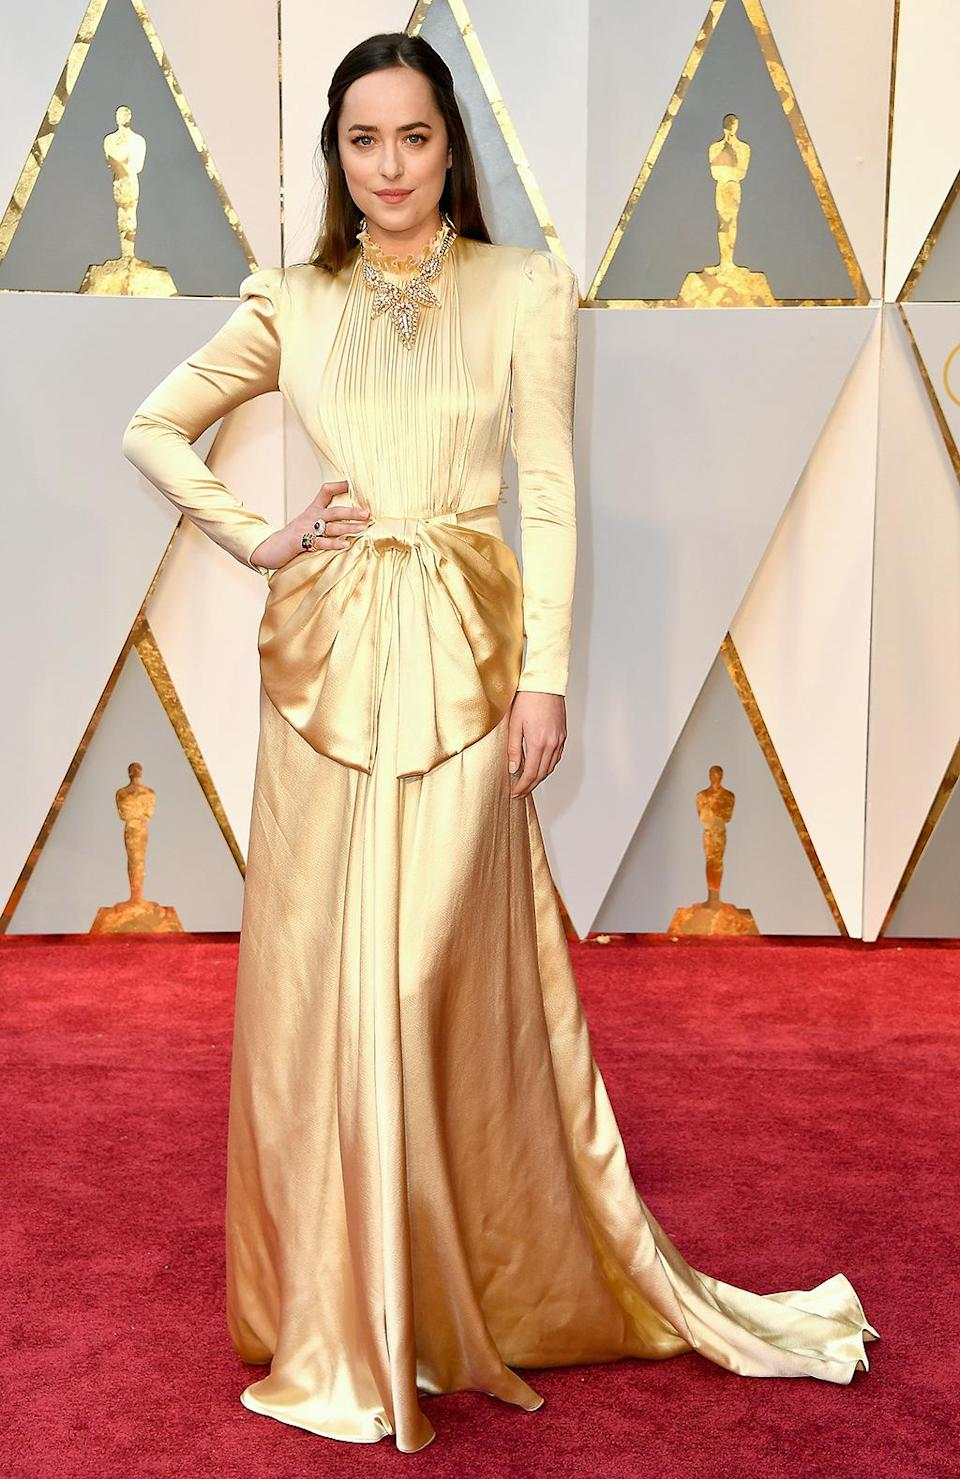 <p>Actor Dakota Johnson attends the 89th Annual Academy Awards at Hollywood & Highland Center on Feb. 26, 2017. (Photo by Steve Granitz/WireImage) </p>